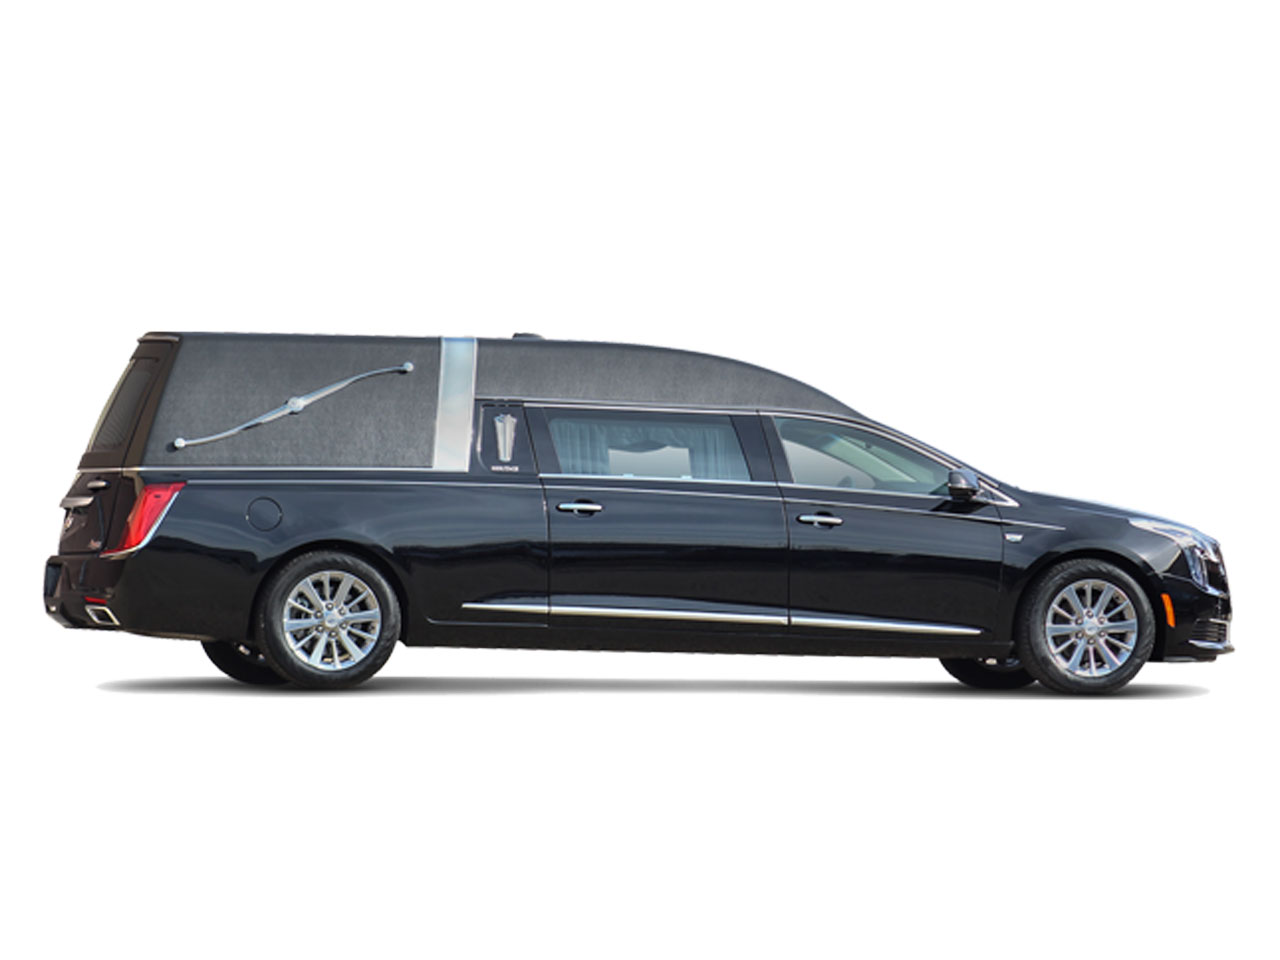 2019 Federal Coach Company Cadillac Federal Heritage Hearse 7